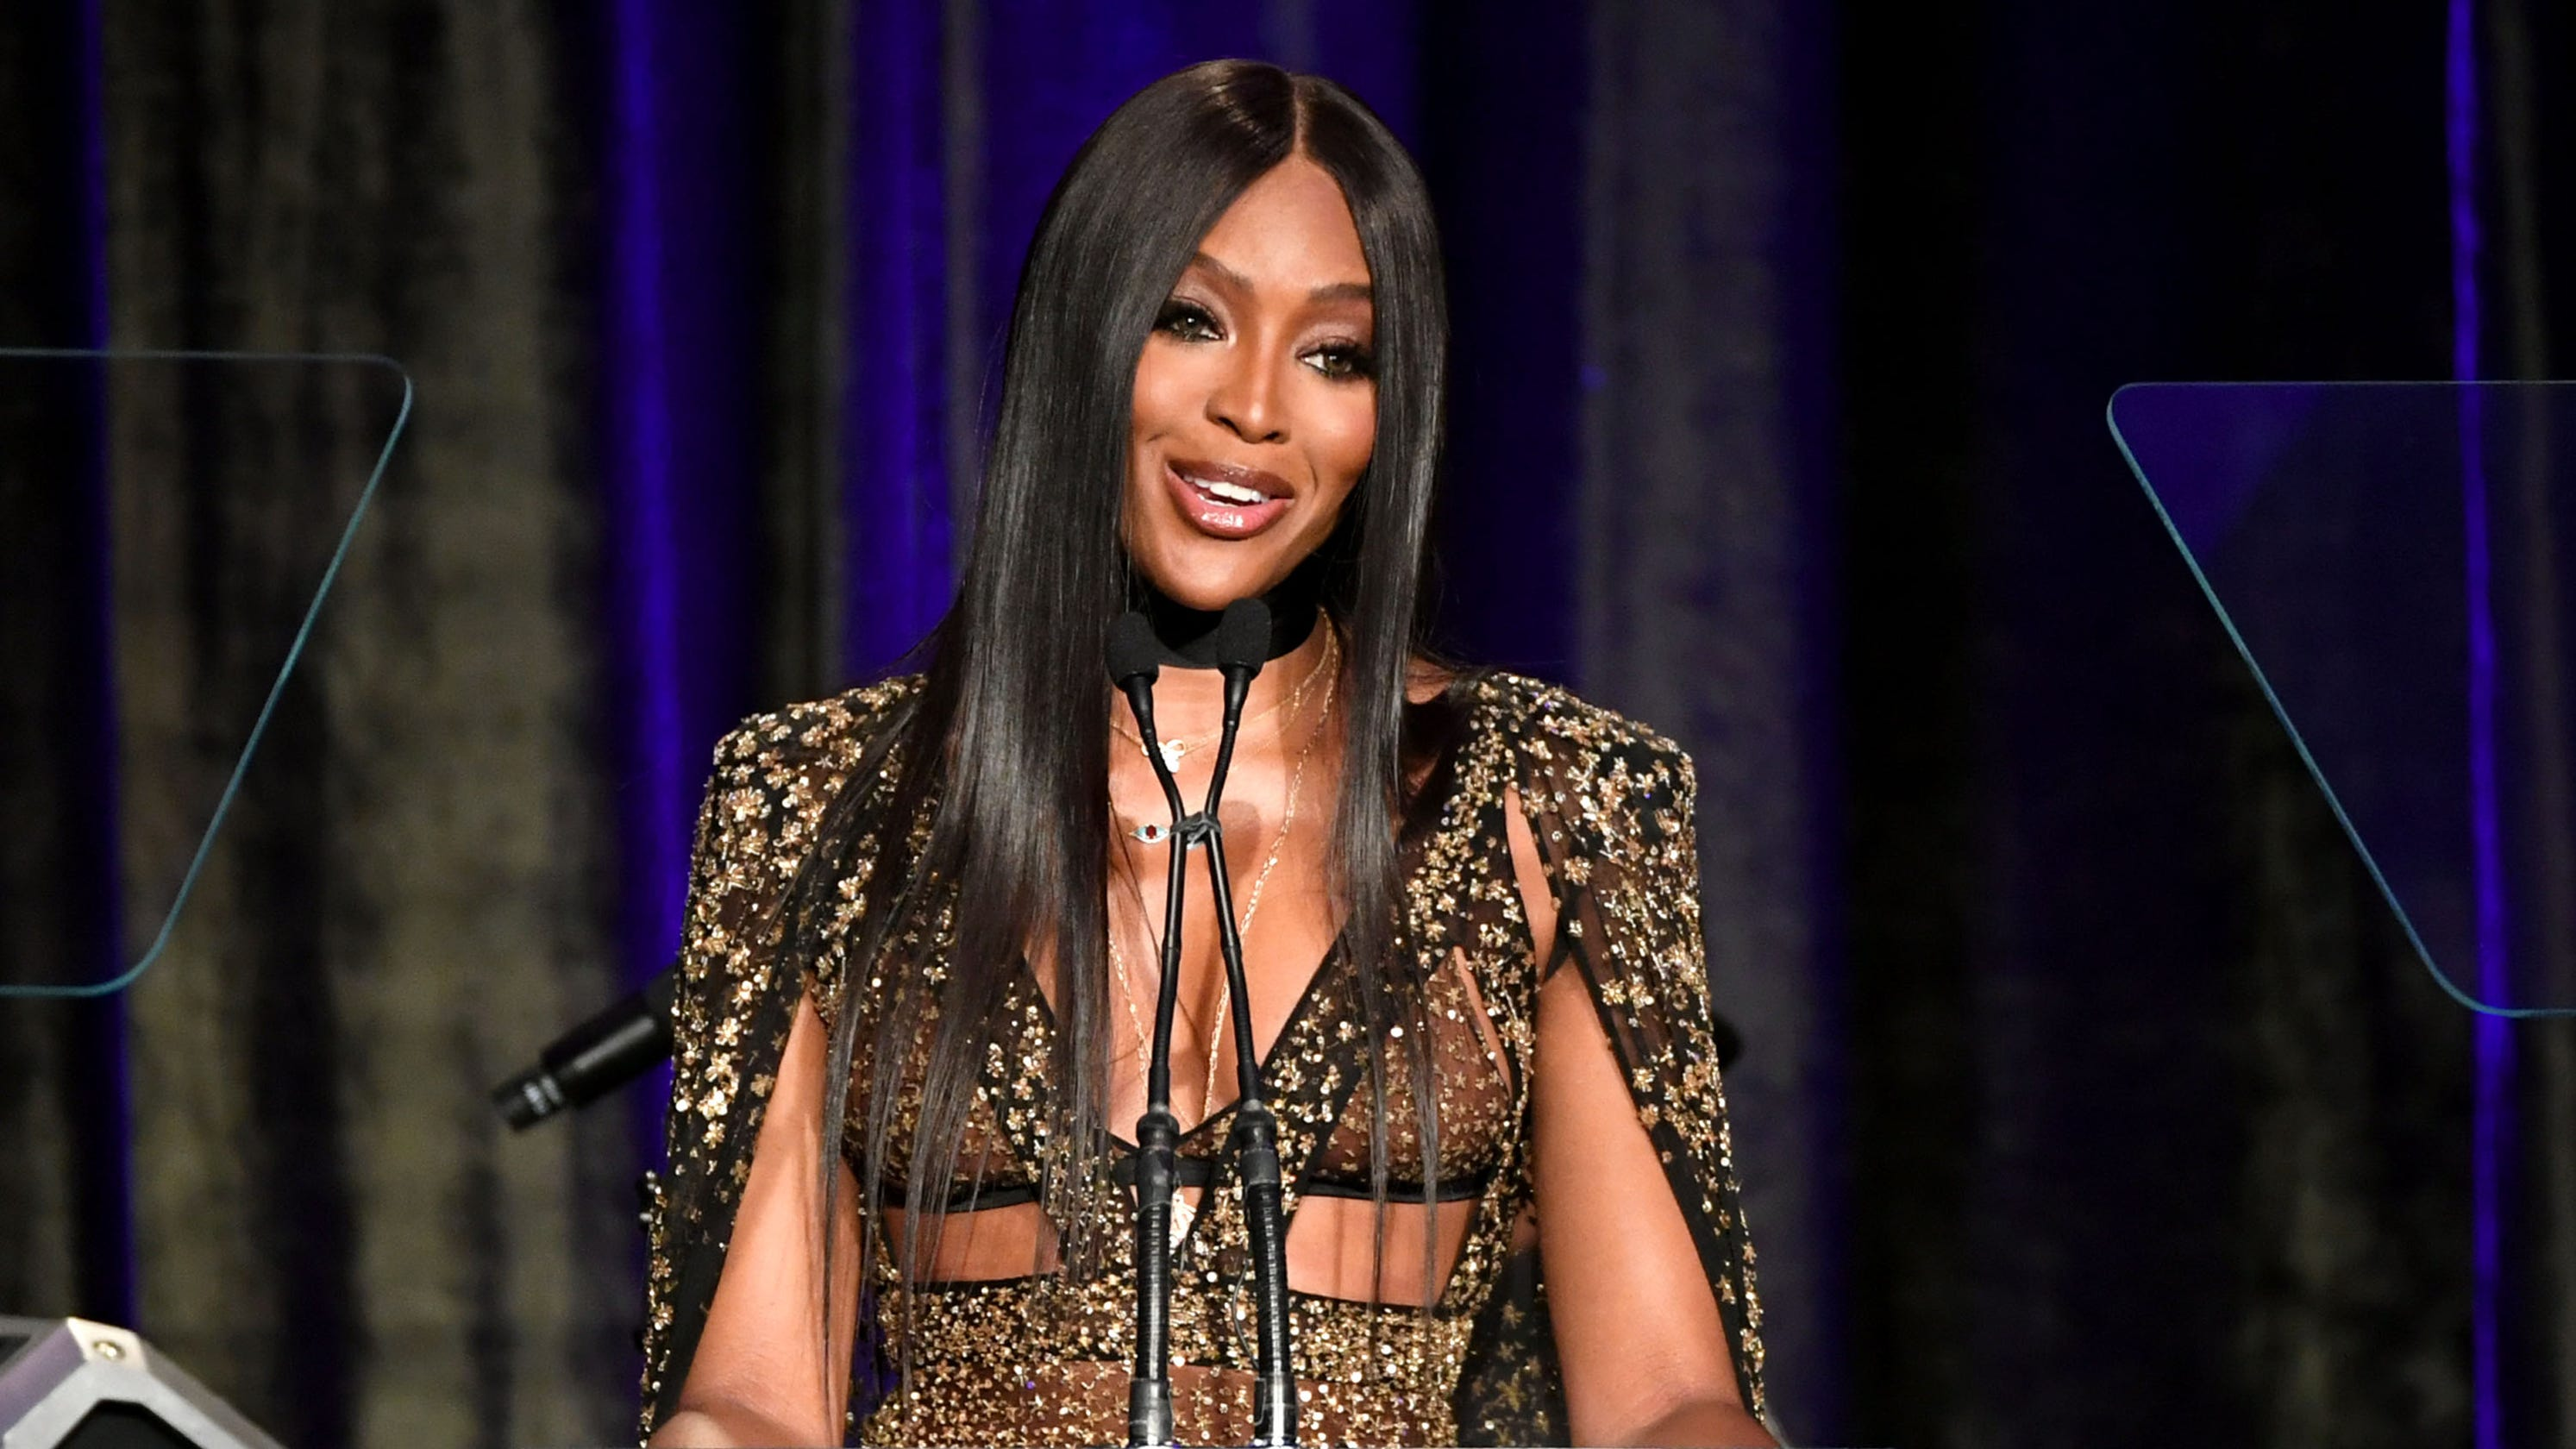 Naomi Campbell opens up about her ties to Jeffrey Epstein, says she's 'sickened' by crimes